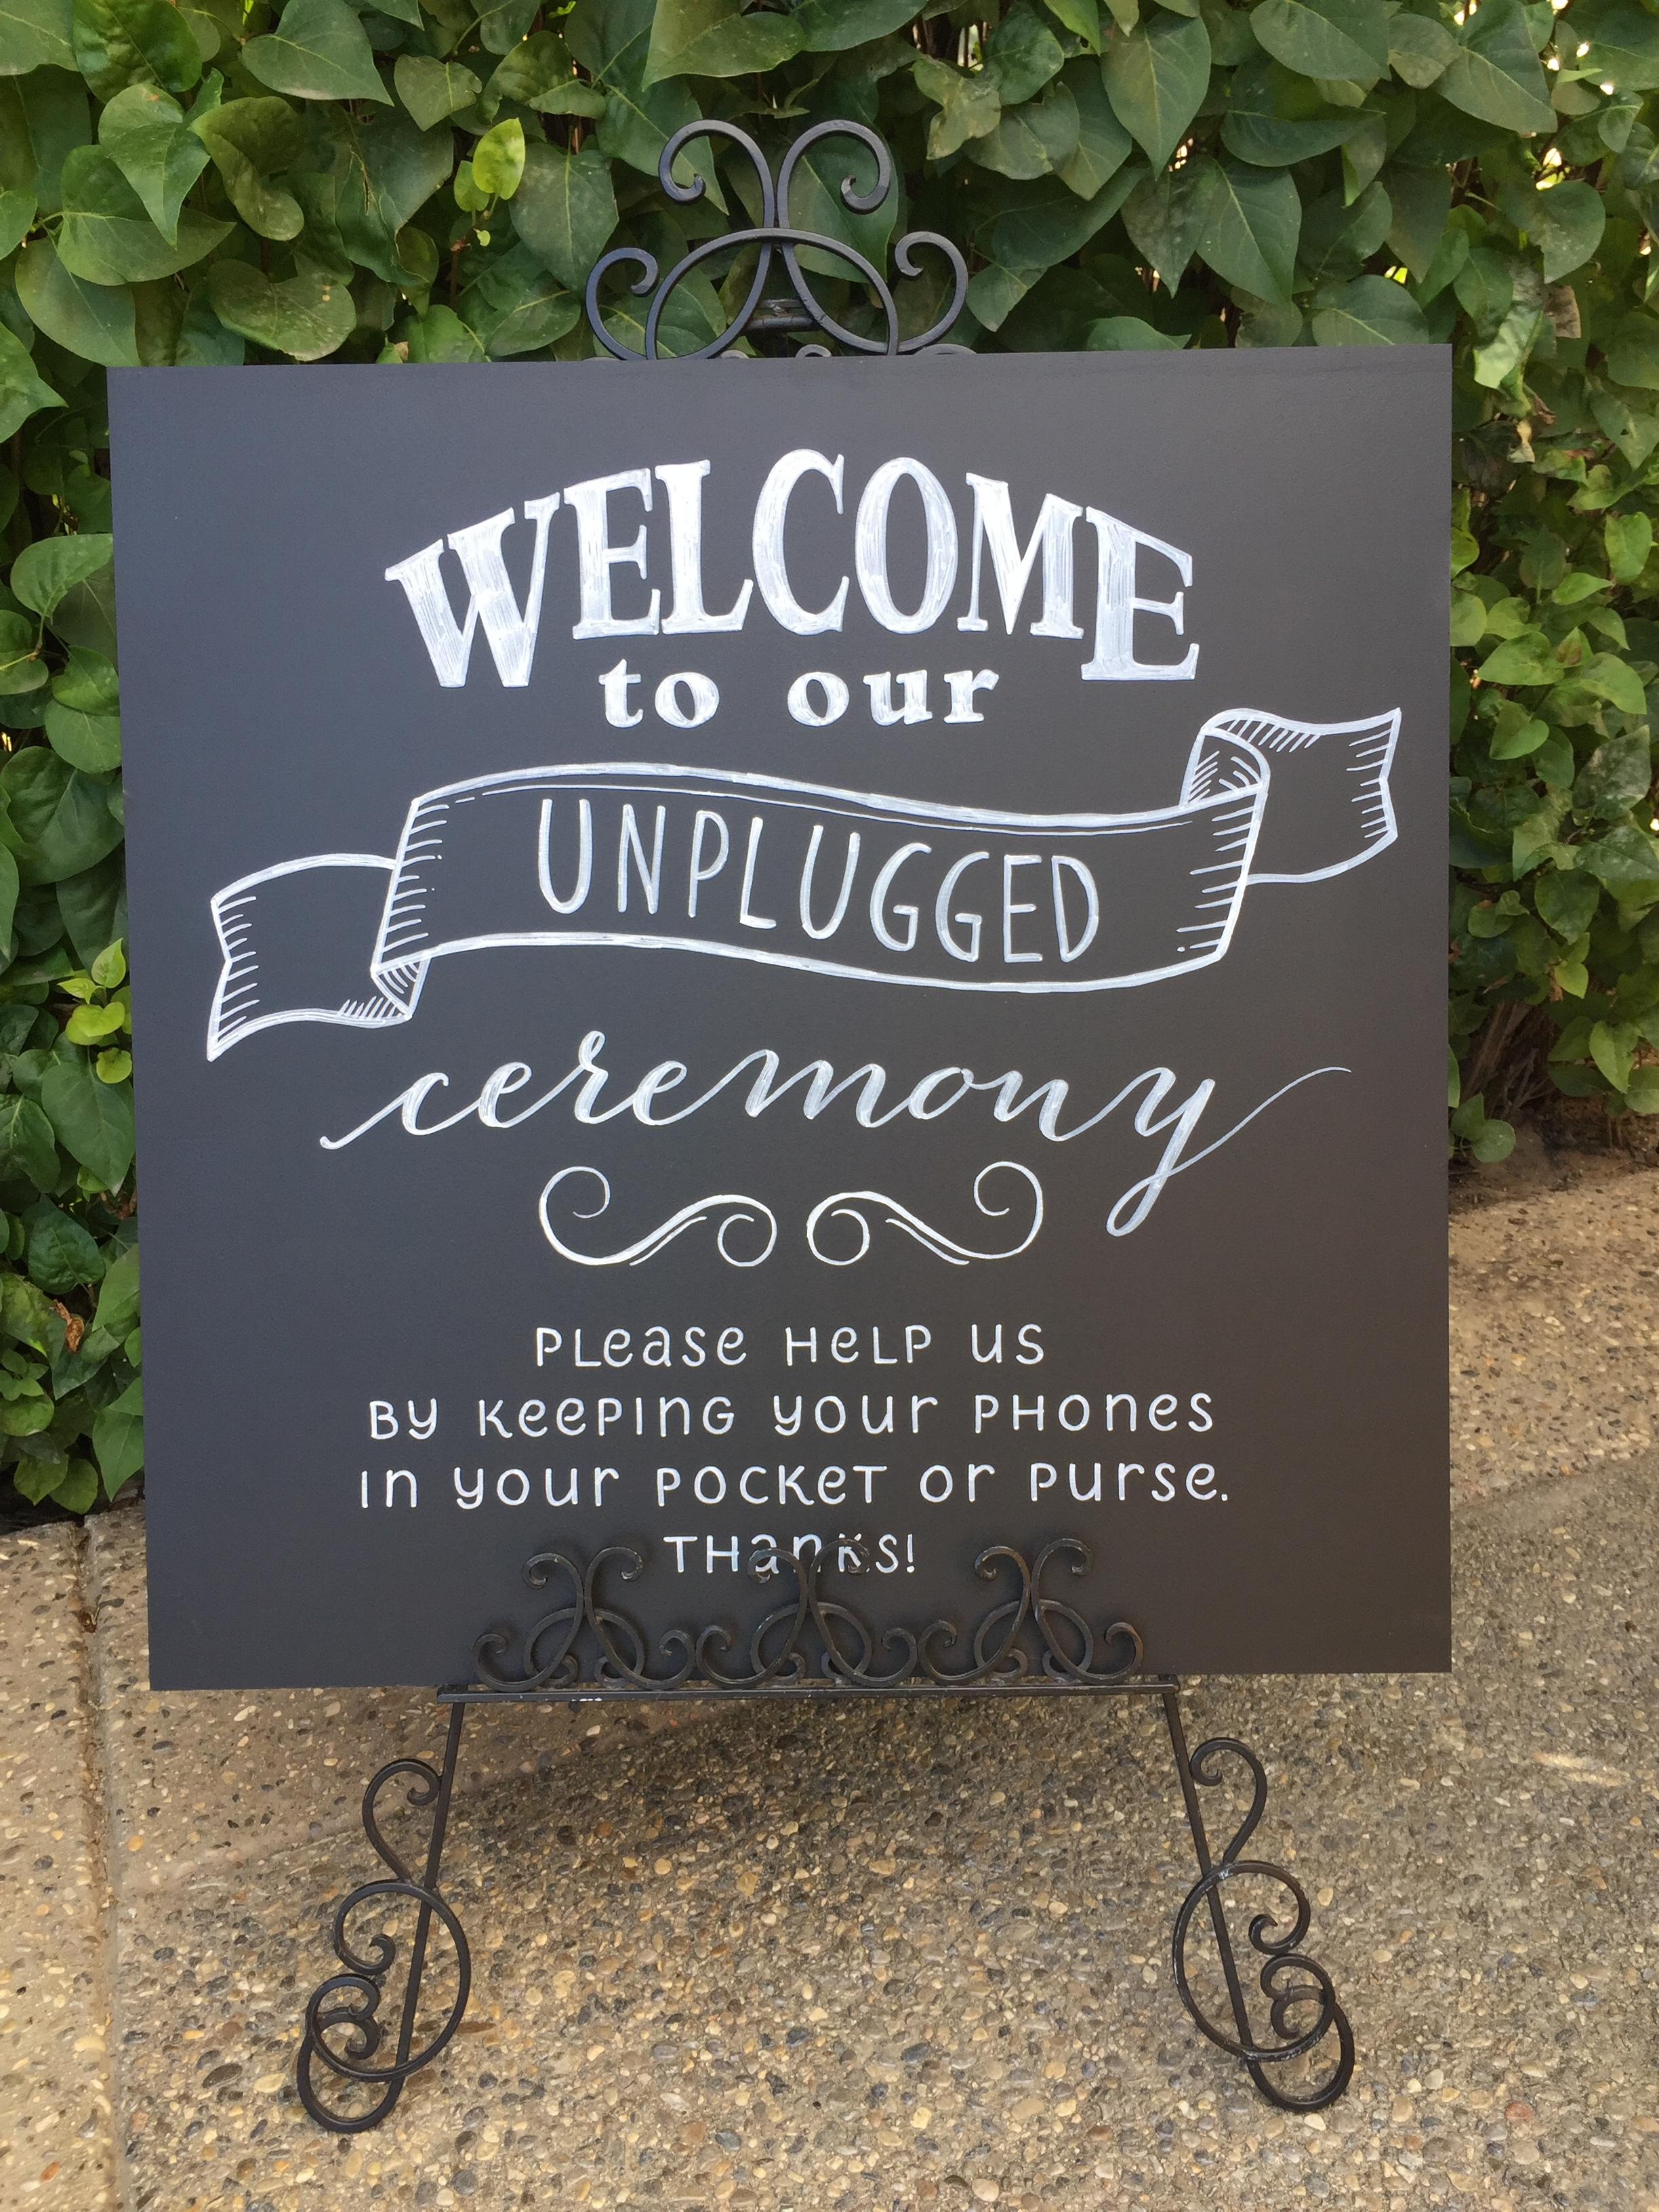 Please and thank you goes a long way - and having some eye-catching signage ensures everyone will follow the rules.